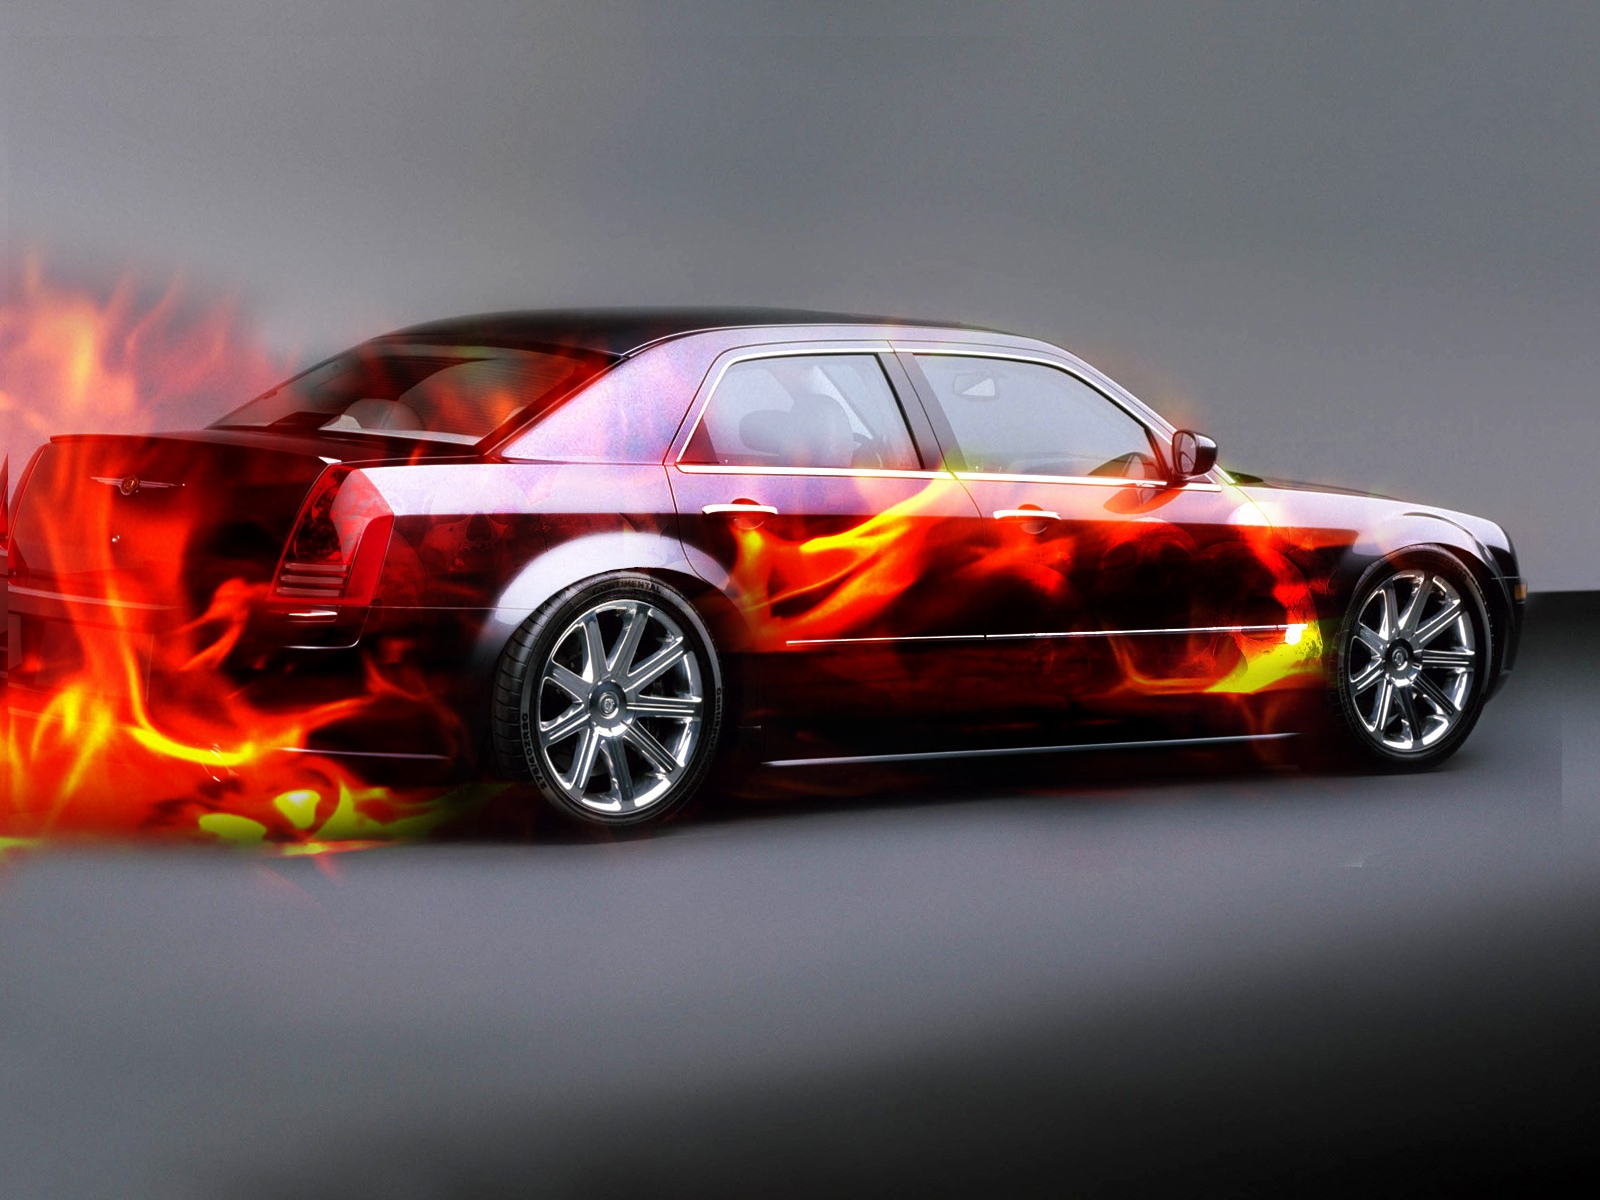 Hot Car Wallpaper ~ Free Wallpapers For PC